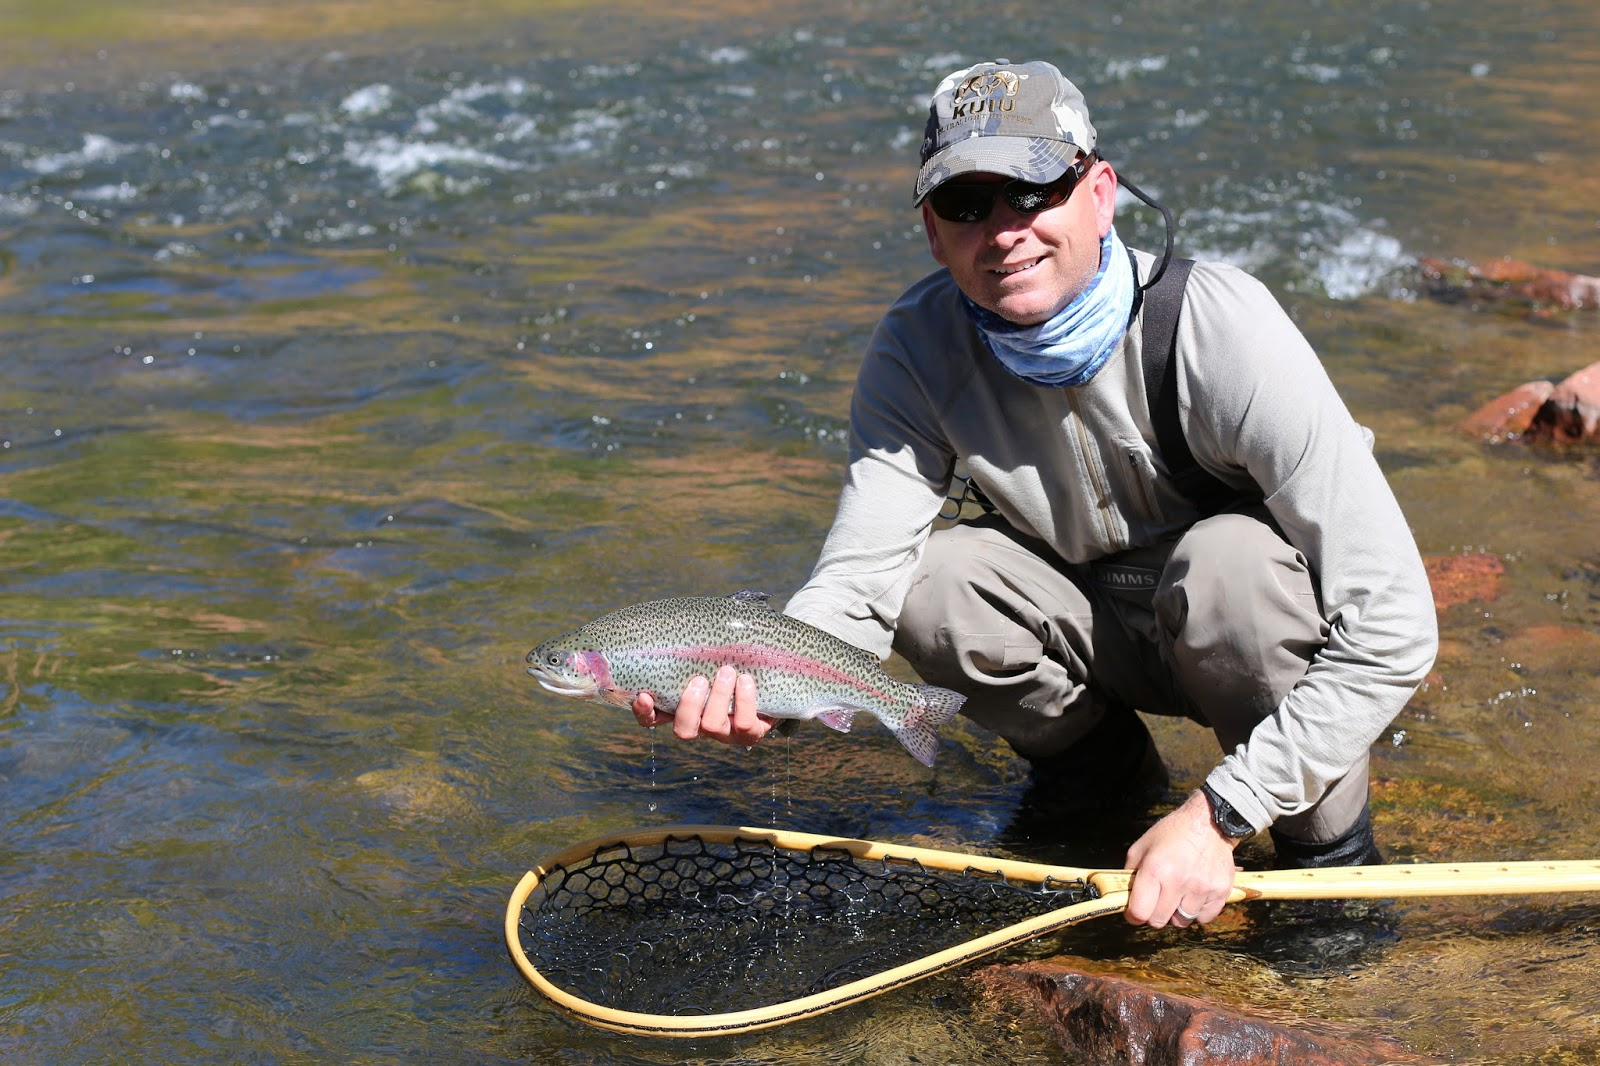 Jay scott outdoors summer fishing photos 1 for Fly fishing podcast